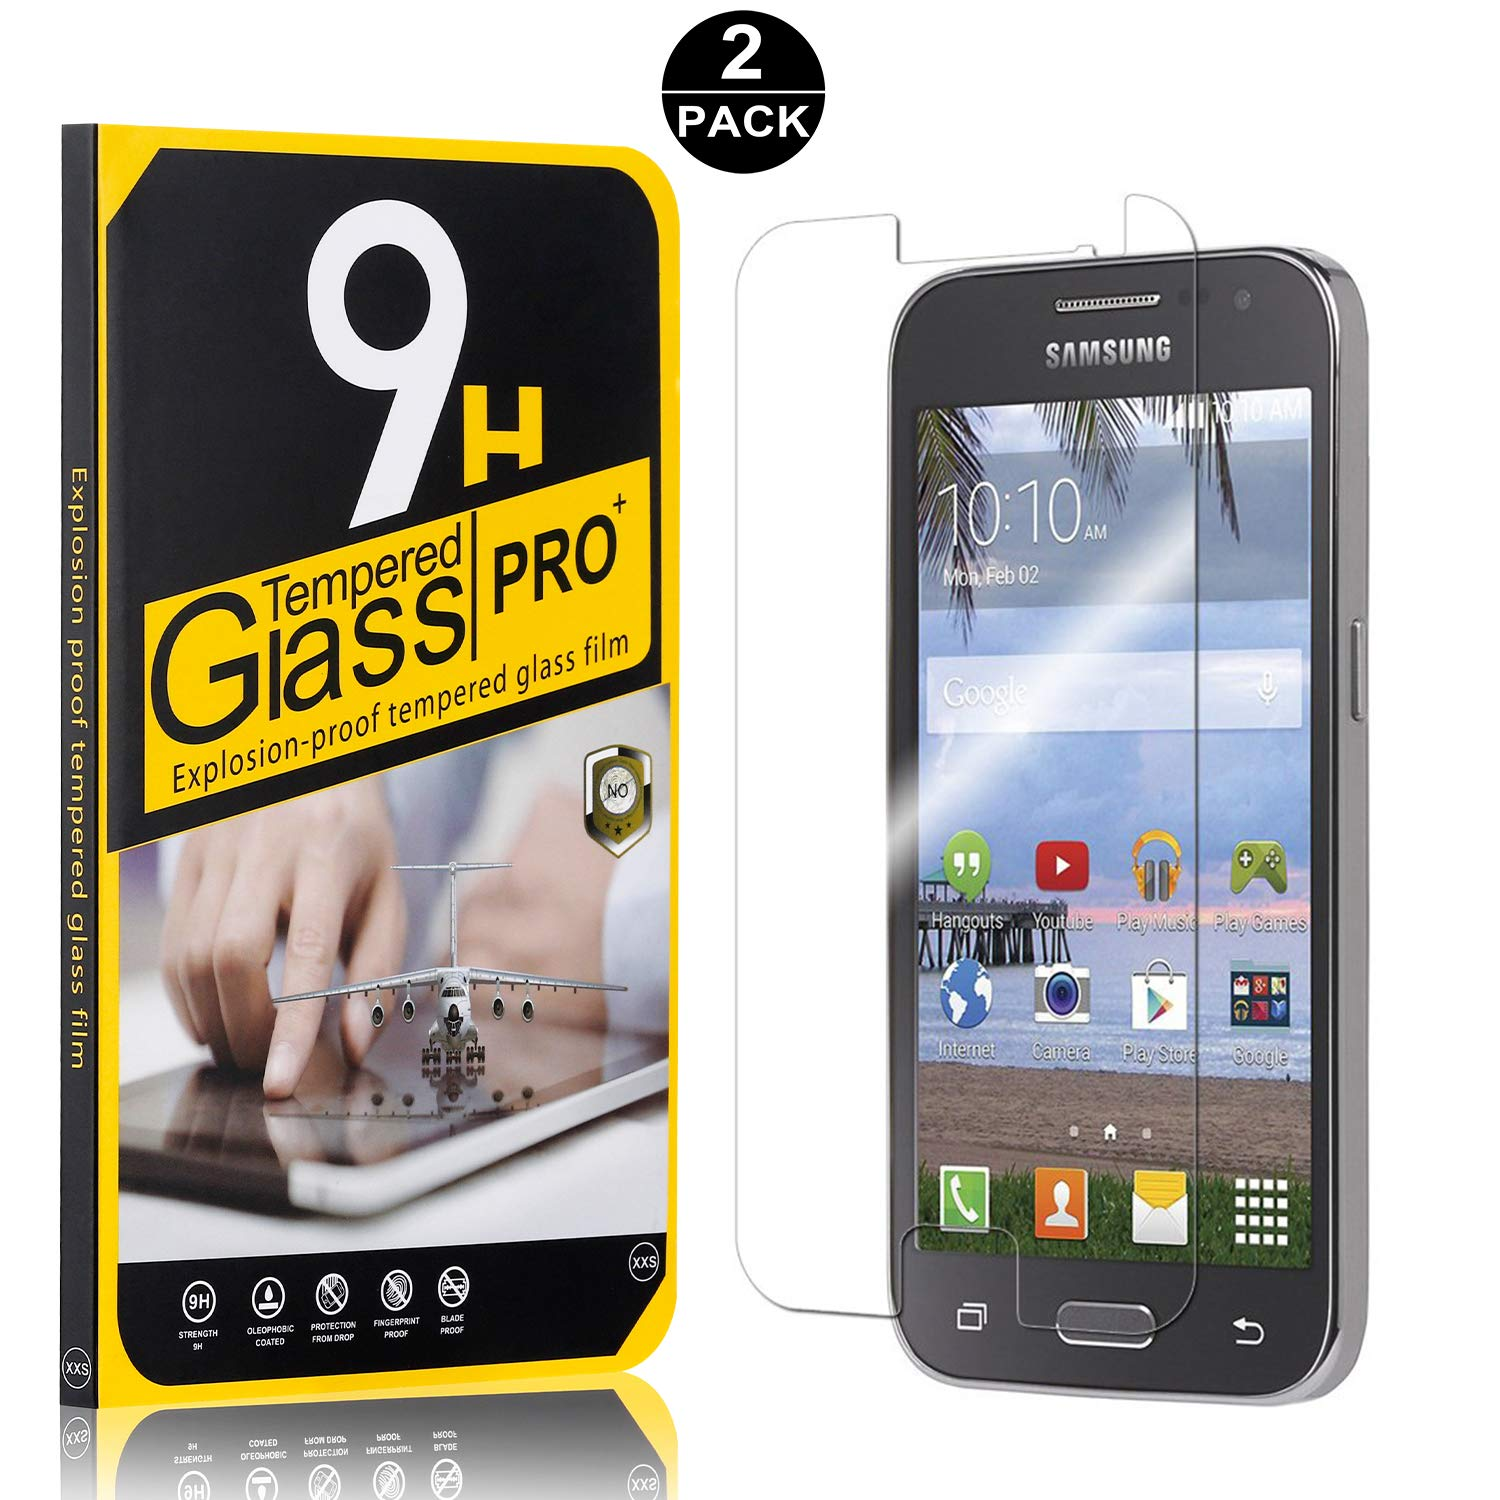 UNEXTATI 9H Hardness Screen Protector Film 3 Pack Galaxy Core Prime Tempered Glass Screen Protector HD Clear Tempered Glass Film for Samsung Galaxy Core Prime